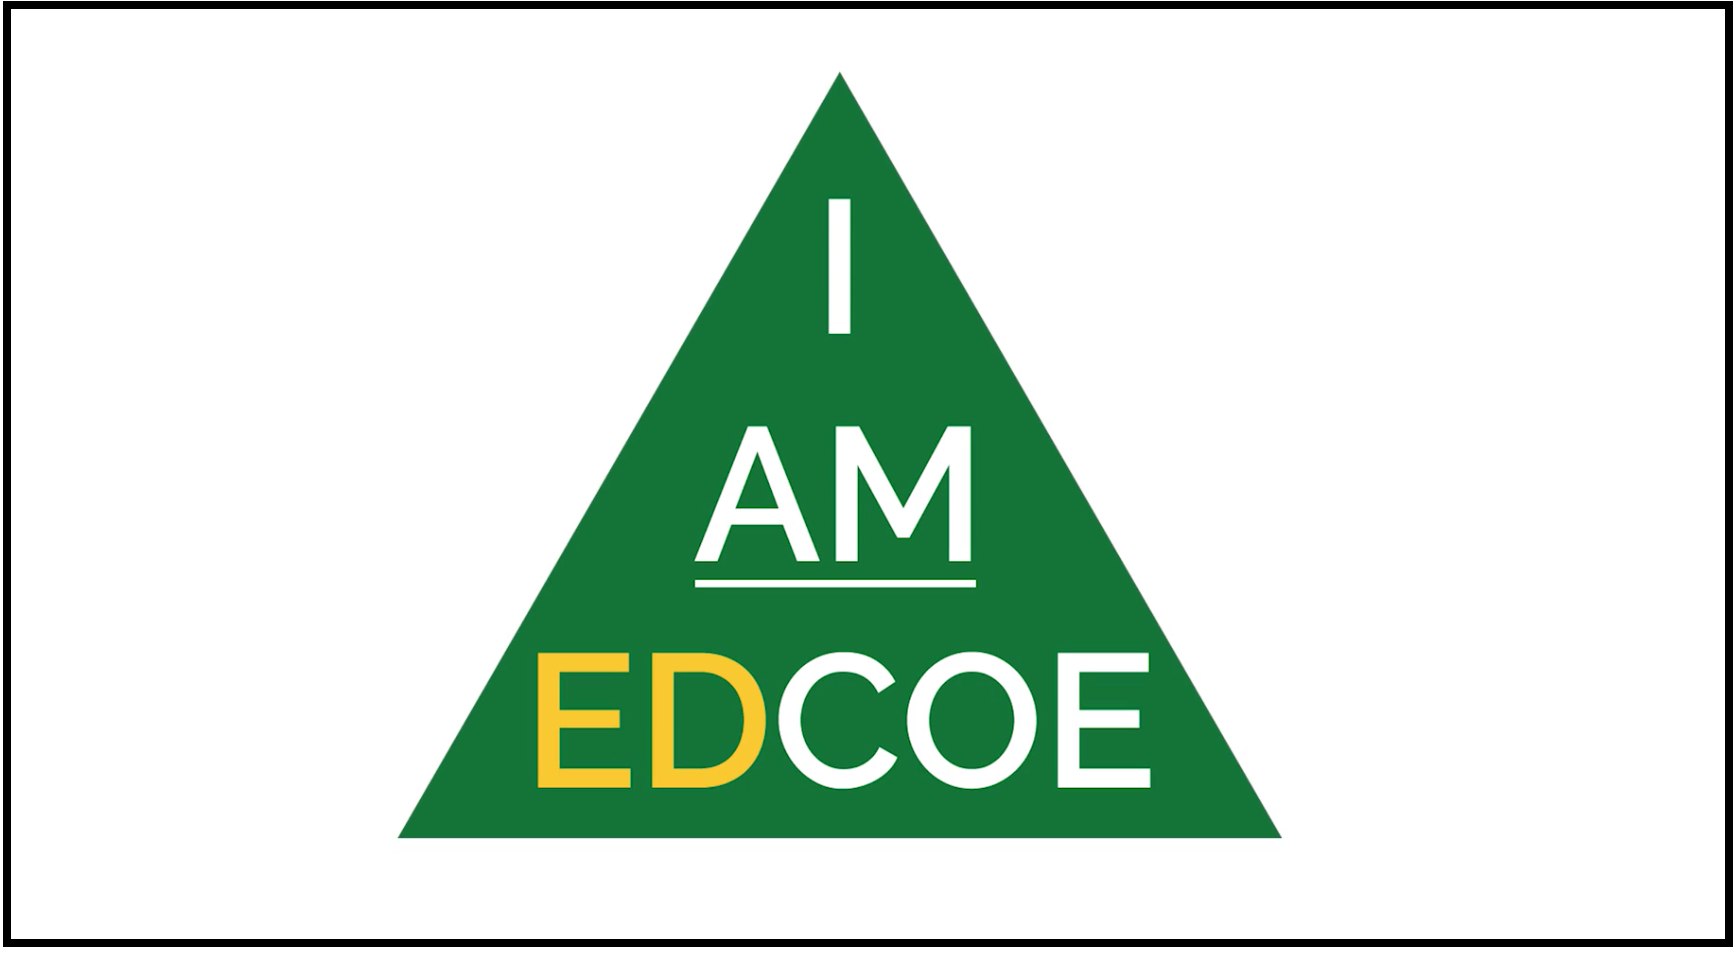 Edjoin Administration Log In - I am edcoe